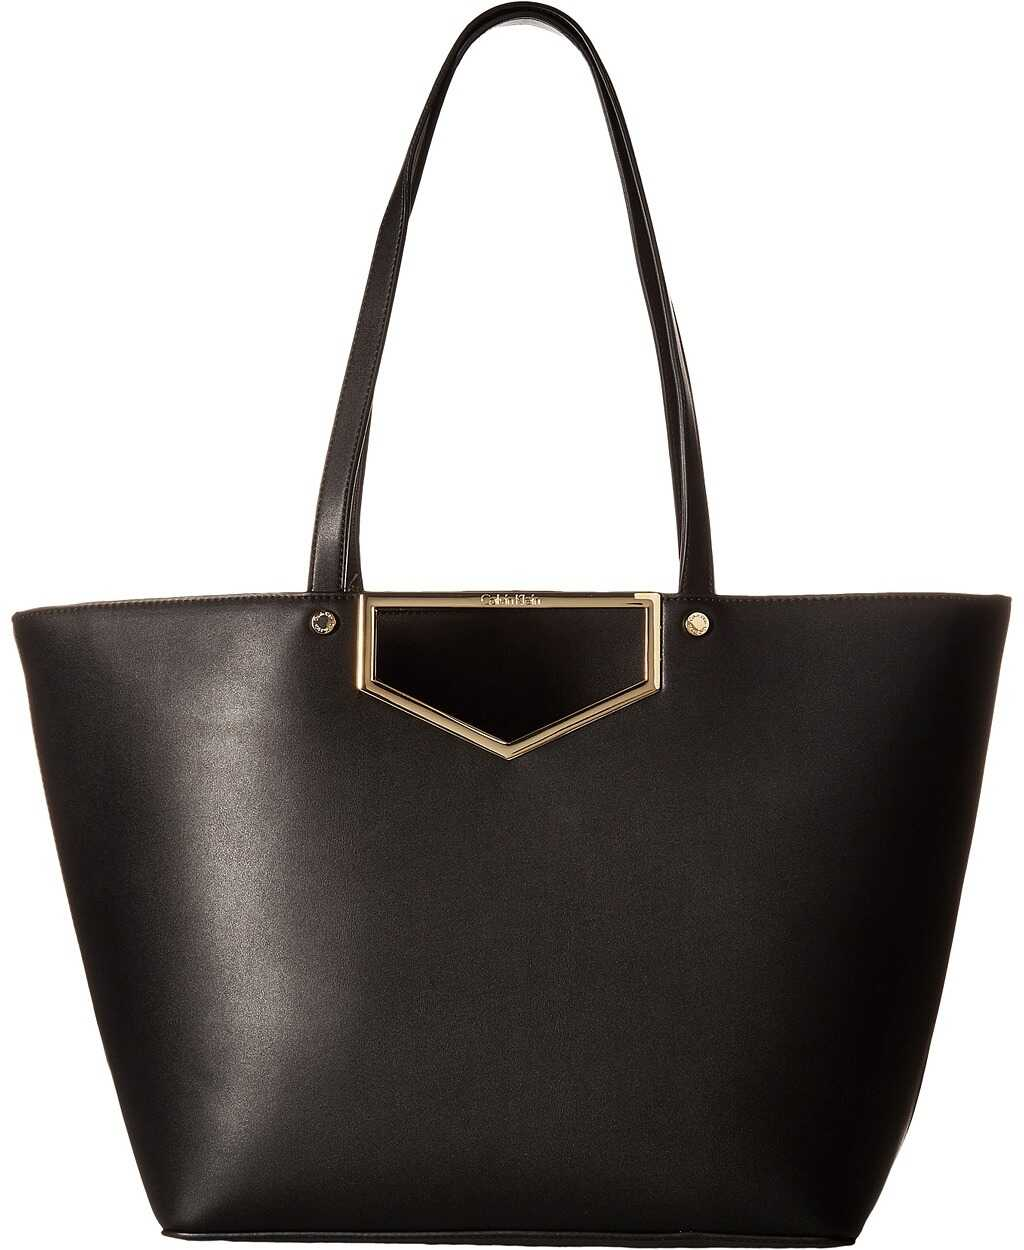 Calvin Klein Novelty Cut Out Hardware Tote Black/Gold